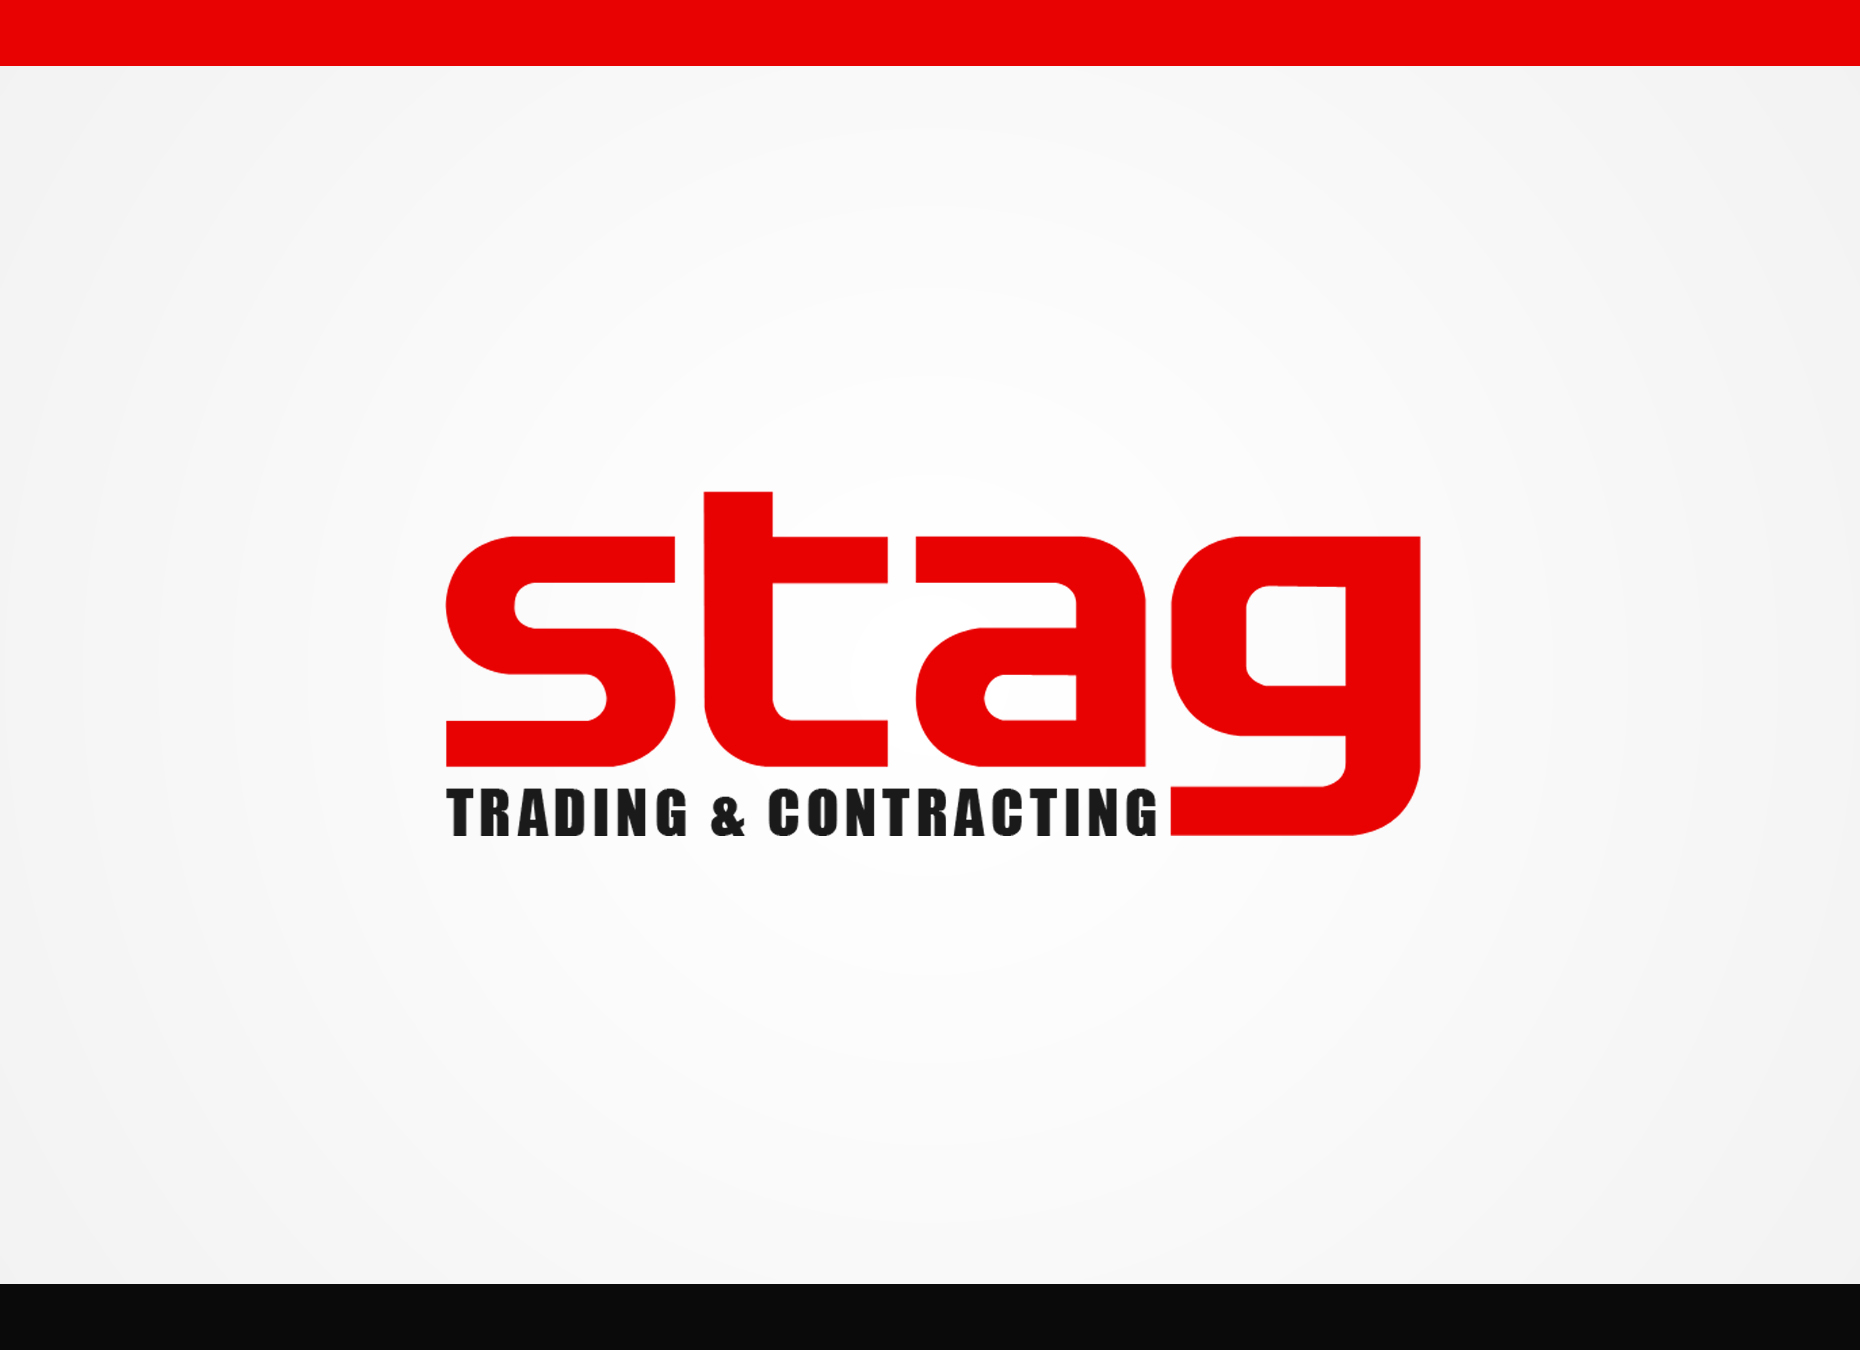 Logo Design by omARTist - Entry No. 13 in the Logo Design Contest Captivating Logo Design for STAG Trading & Contracting.